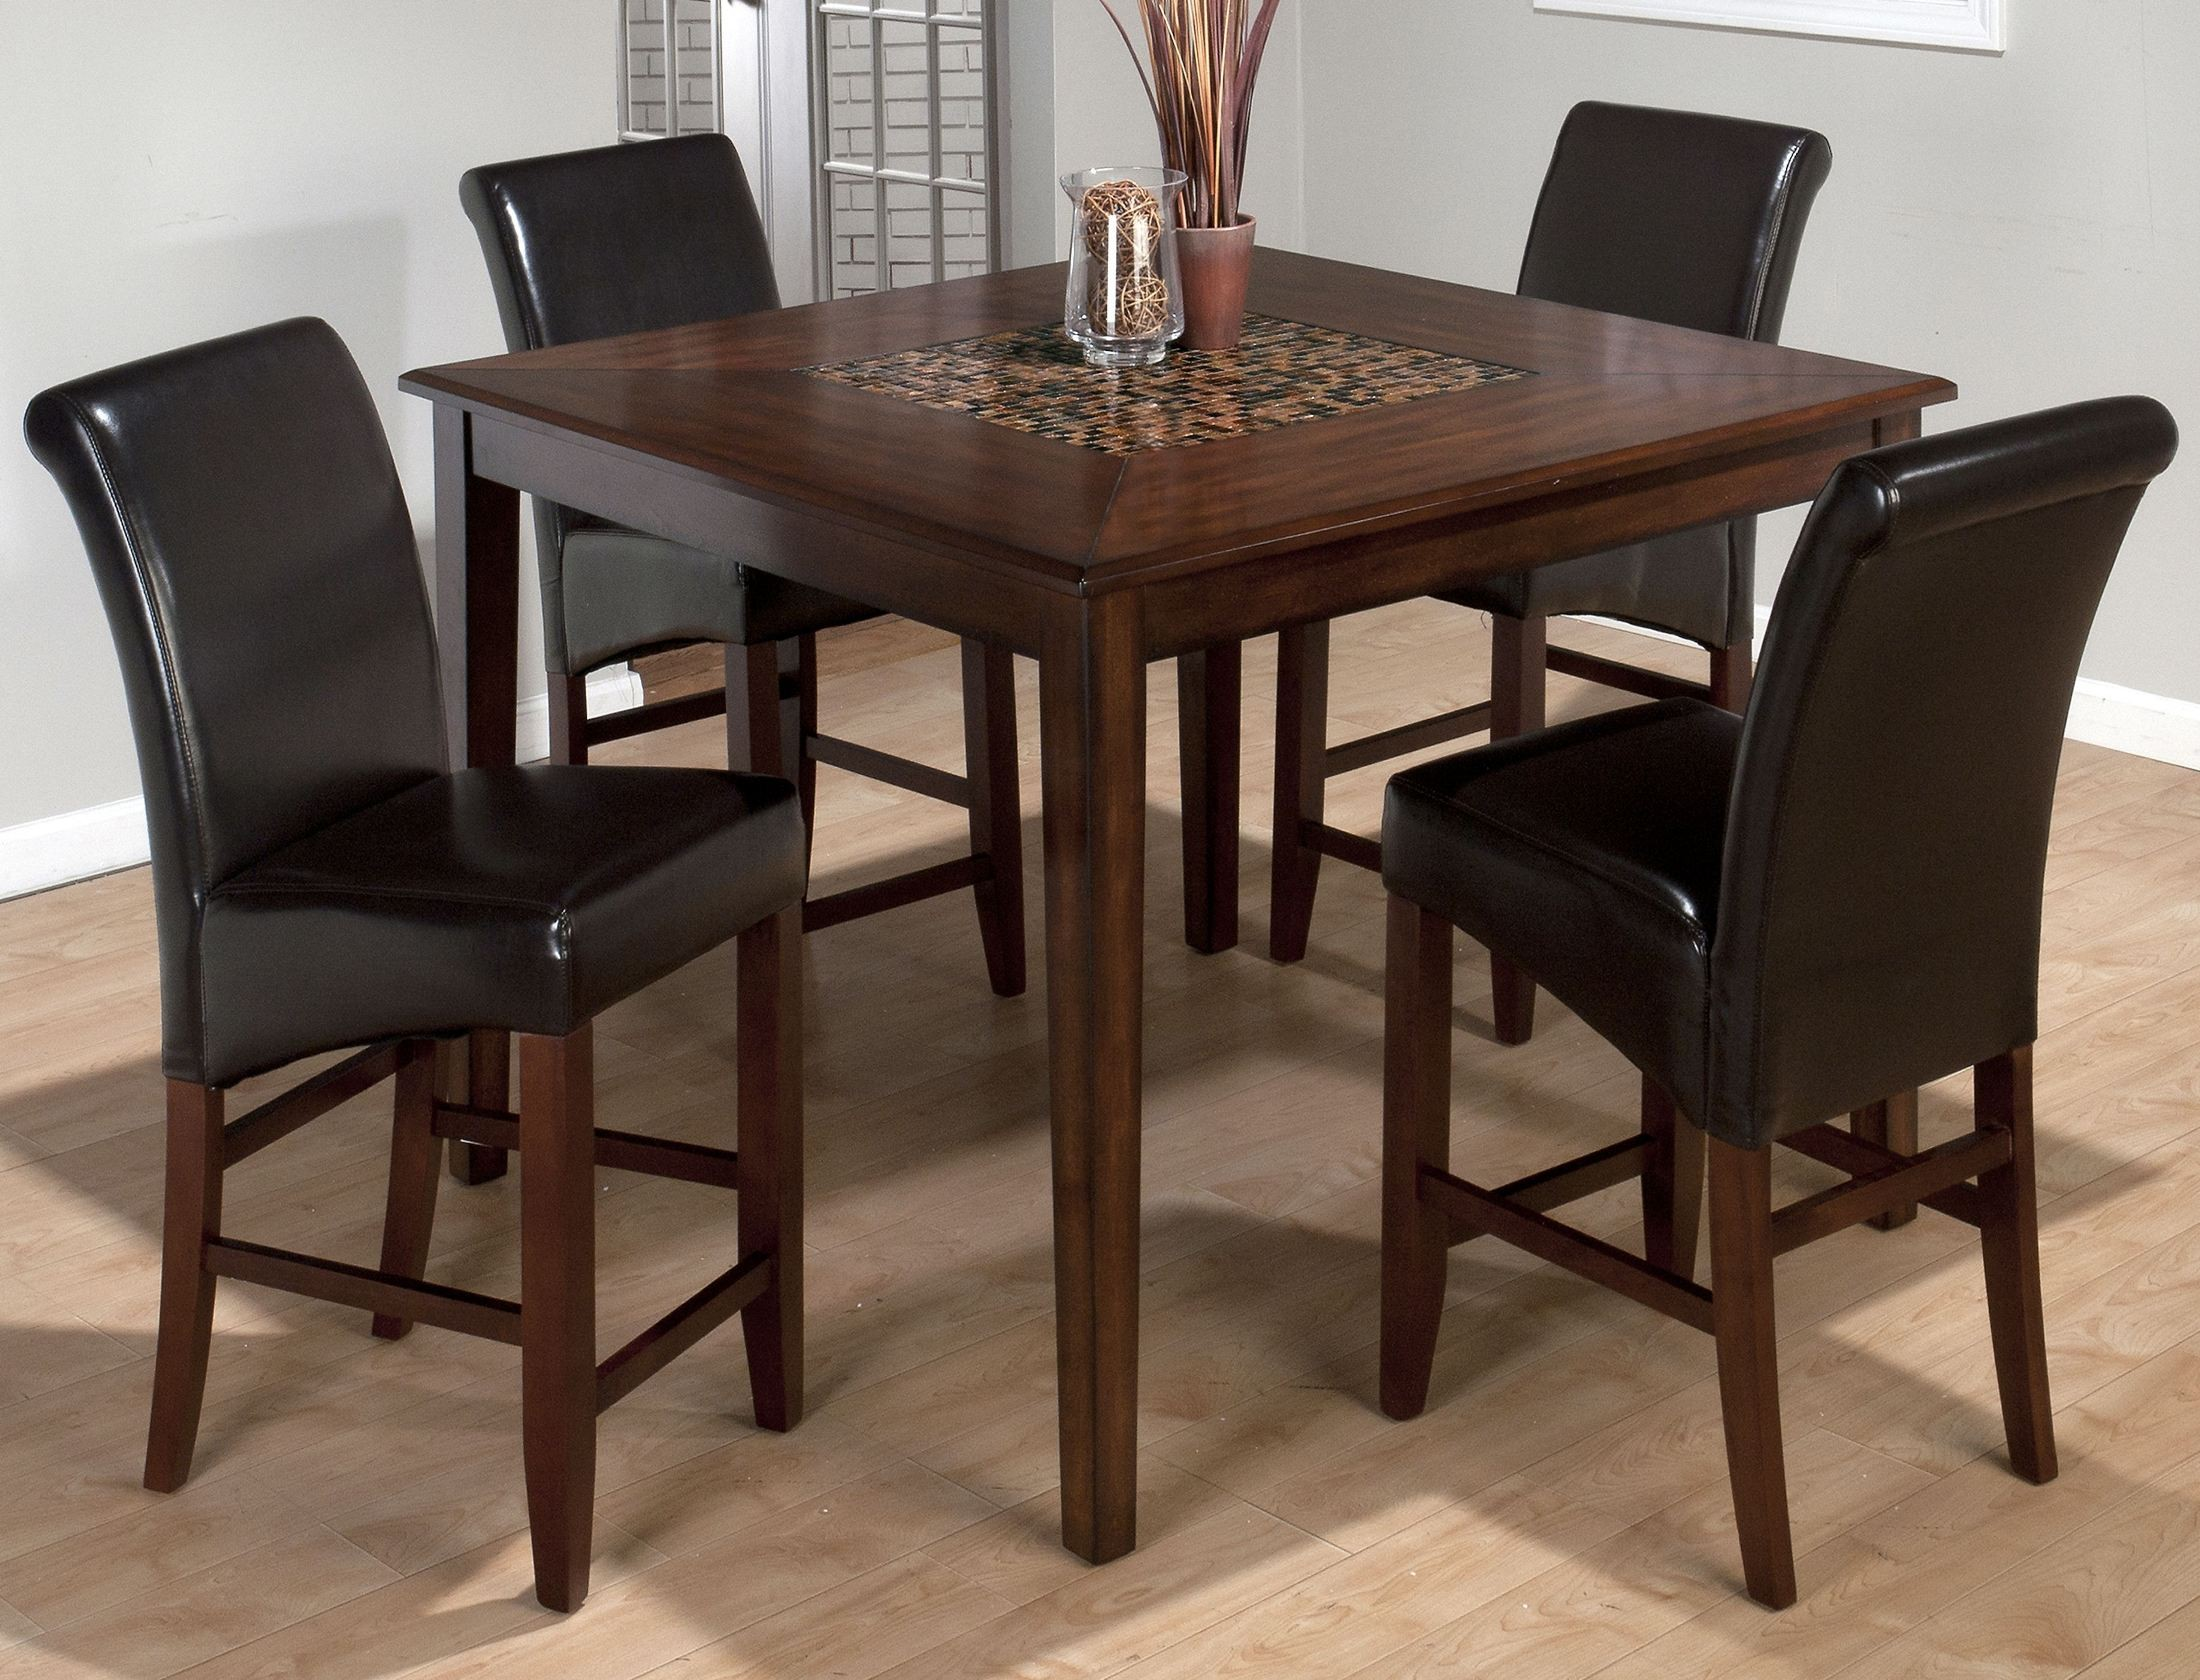 Counter Height Dining Tables: Baroque Brown Mosaic Inlay Counter Height Dining Table